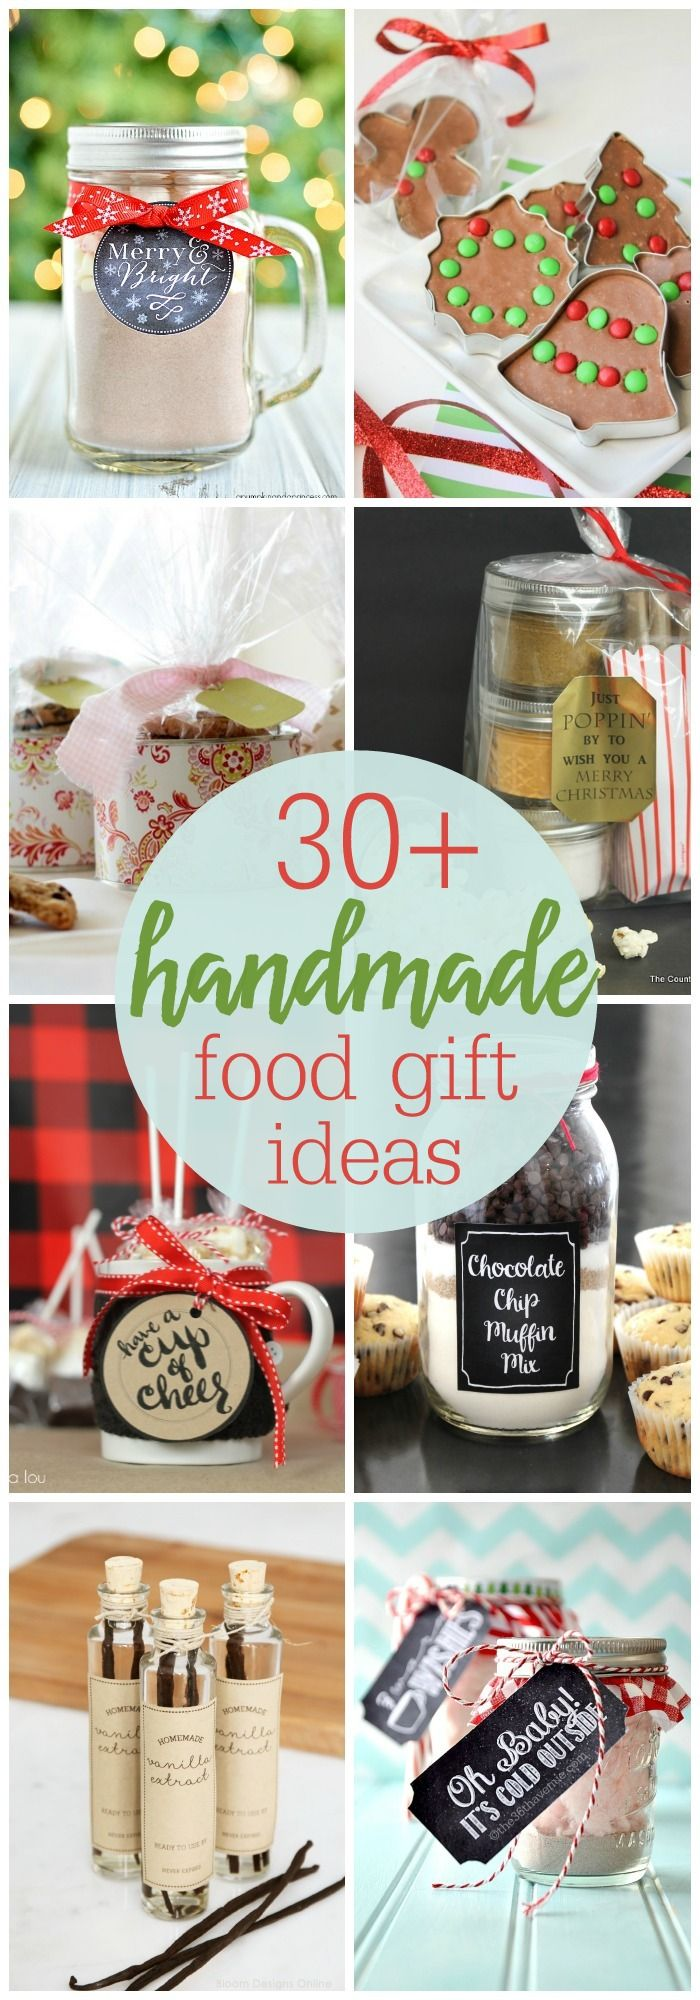 30+ Handmade Food Gift Ideas so many simple, cute and